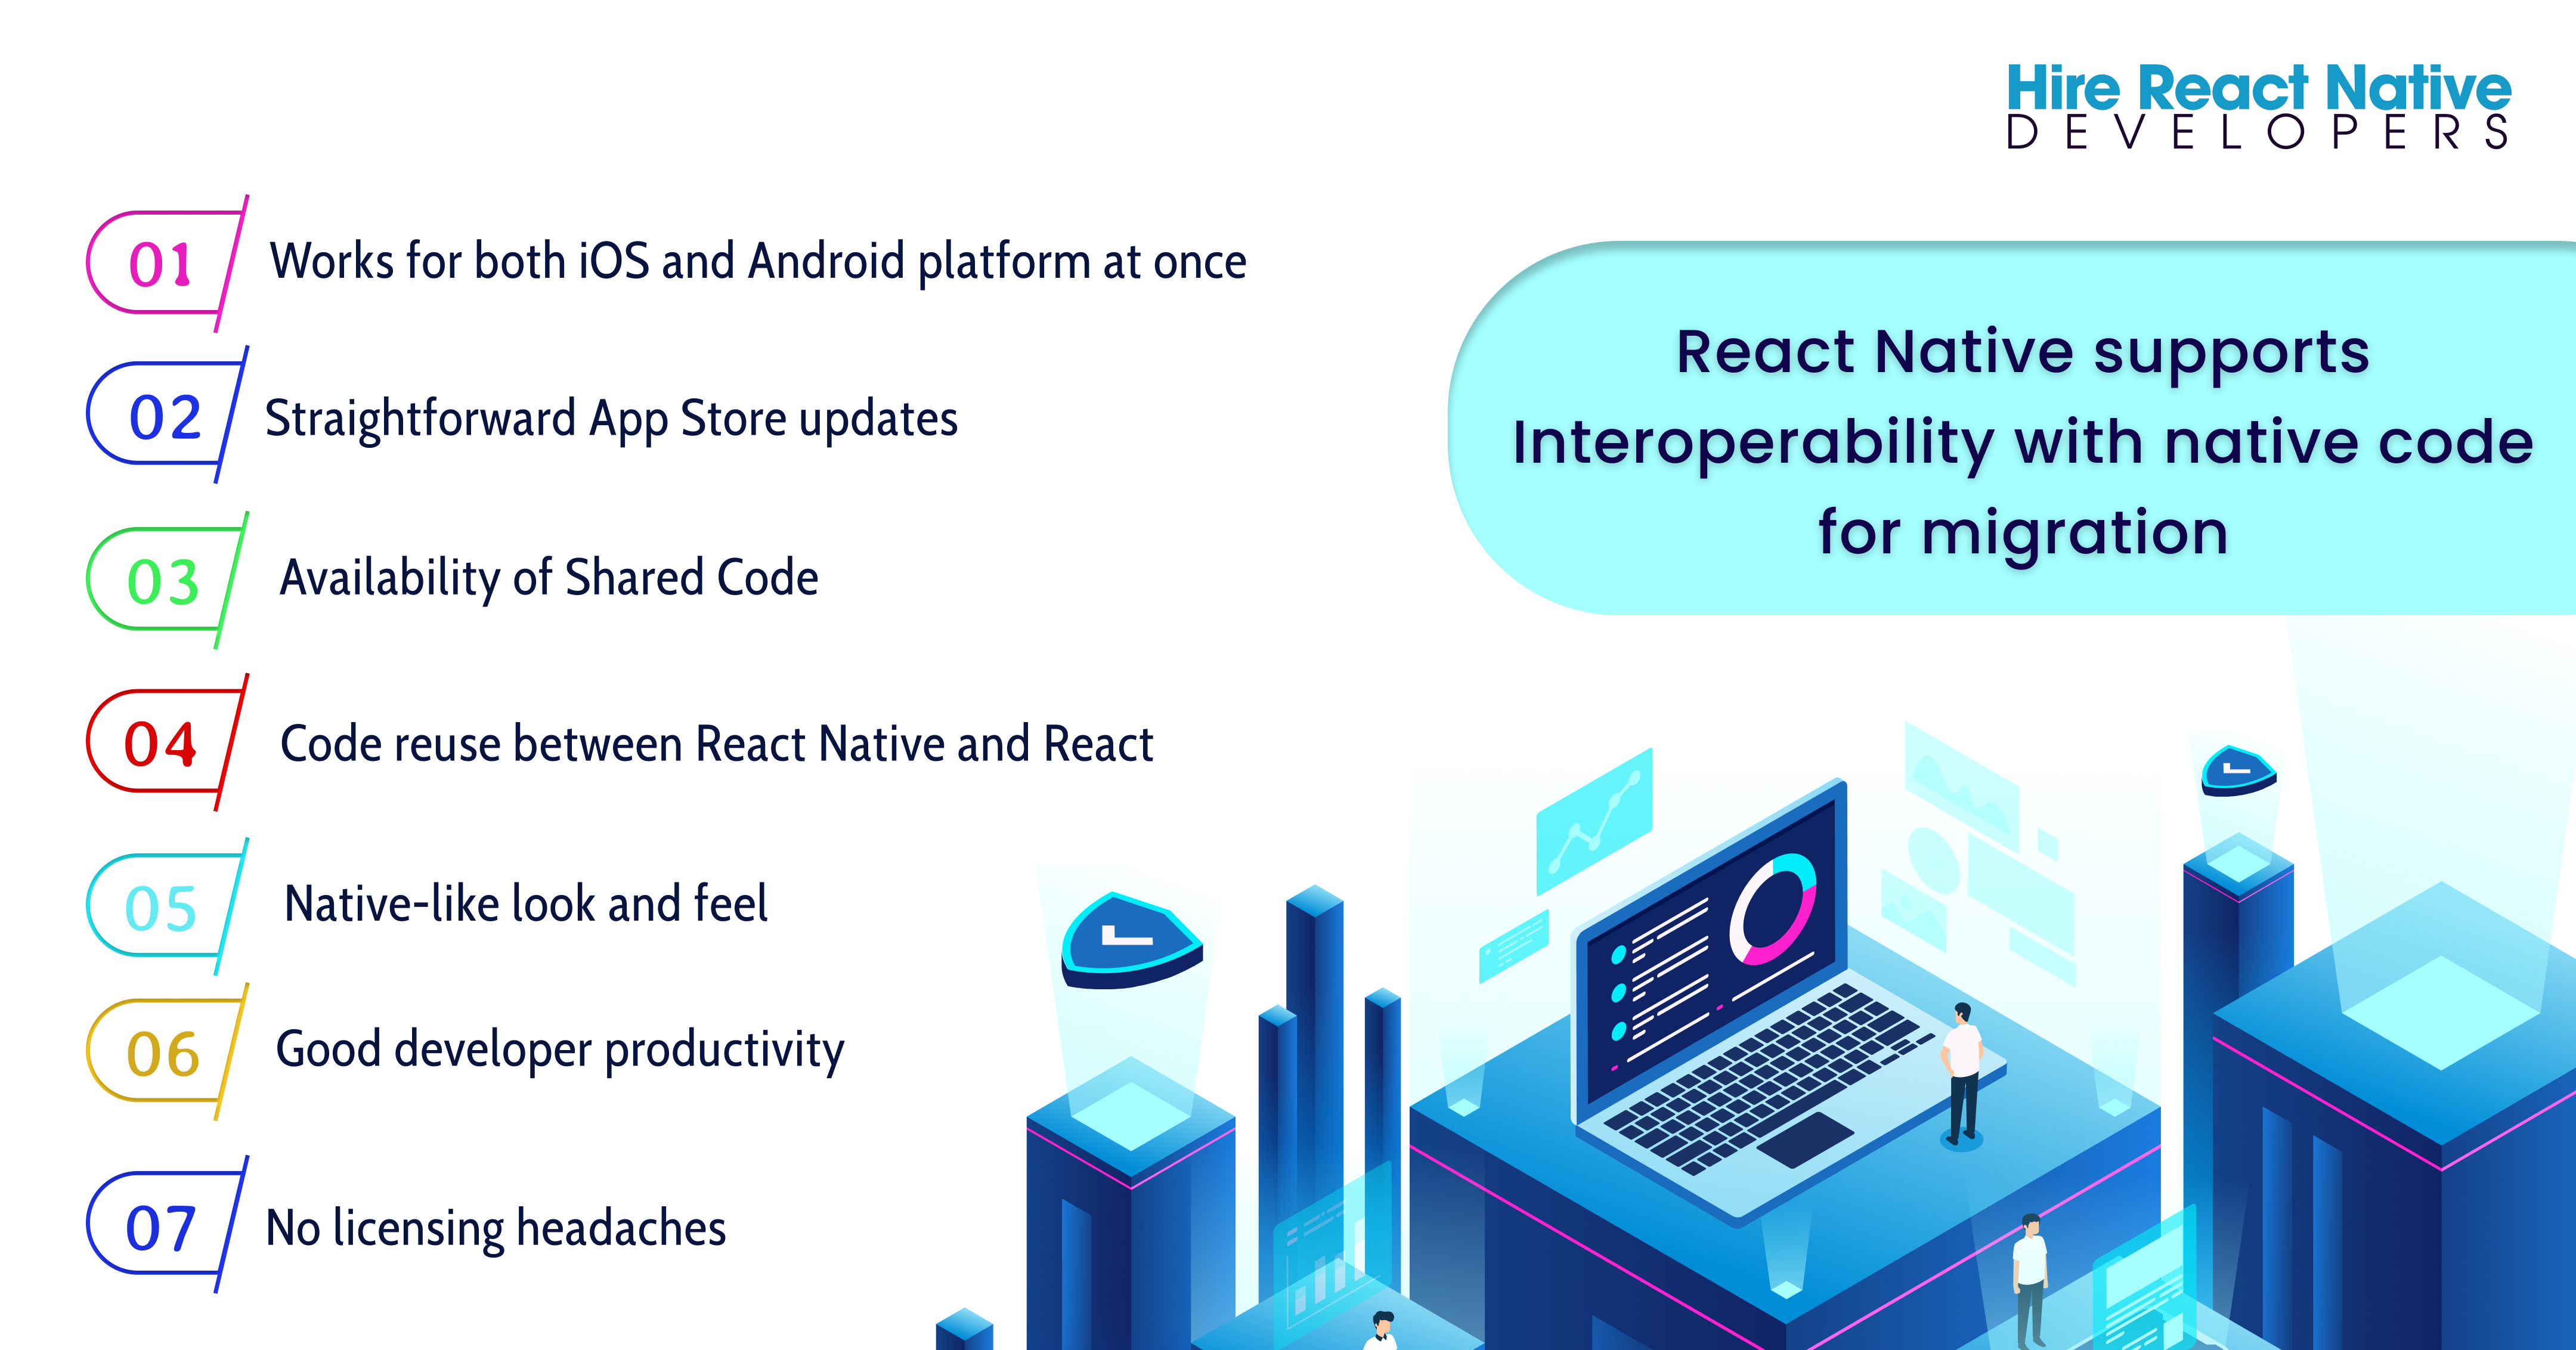 React Native supports Interoperability with native code for migration